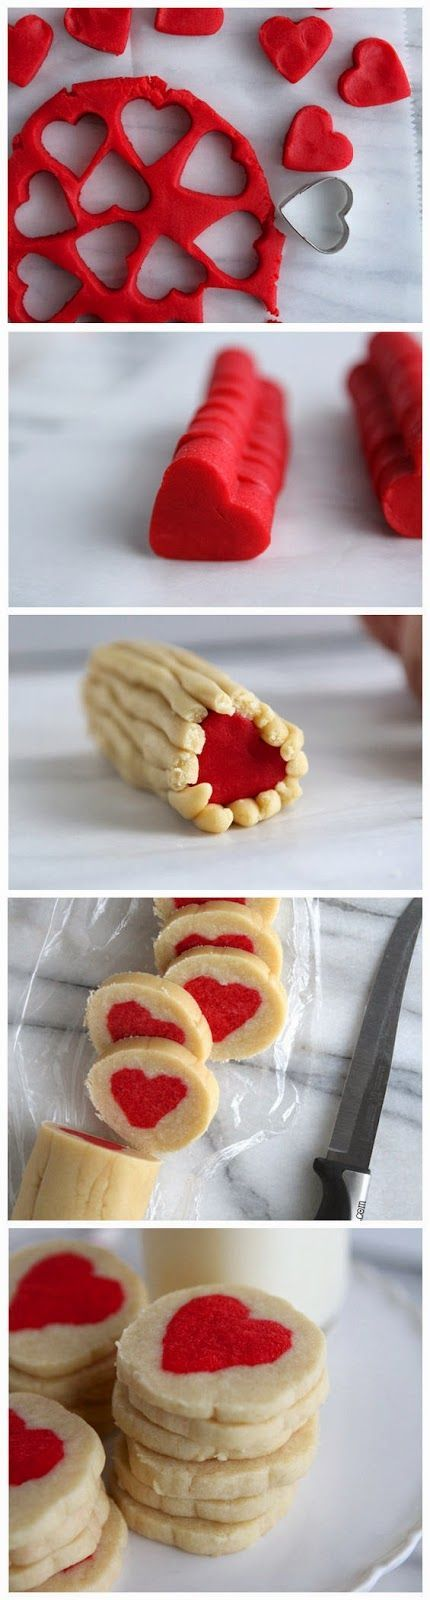 Nicht nur als Herz, grüne Kleeblätter wären auch toll  Slice n' Bake Heart Cookies (scheduled via http://www.tailwindapp.com?utm_source=pinterest&utm_medium=twpin&utm_content=post597885&utm_campaign=scheduler_attribution)